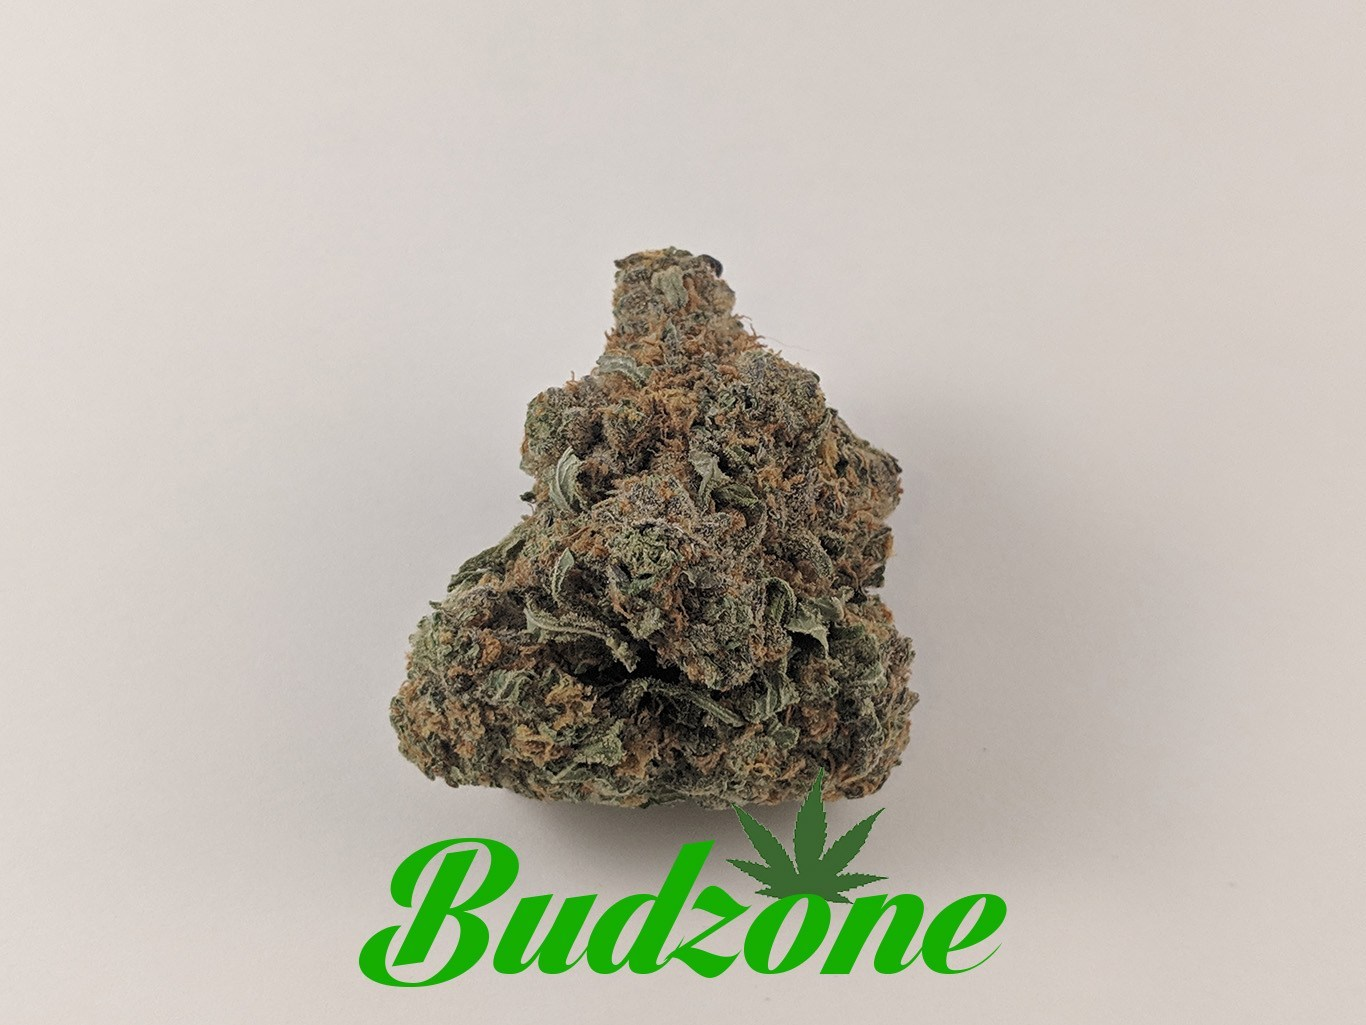 Nuken by Bud Zone - Image © 2020 Bud Zone. All Rights Reserved.